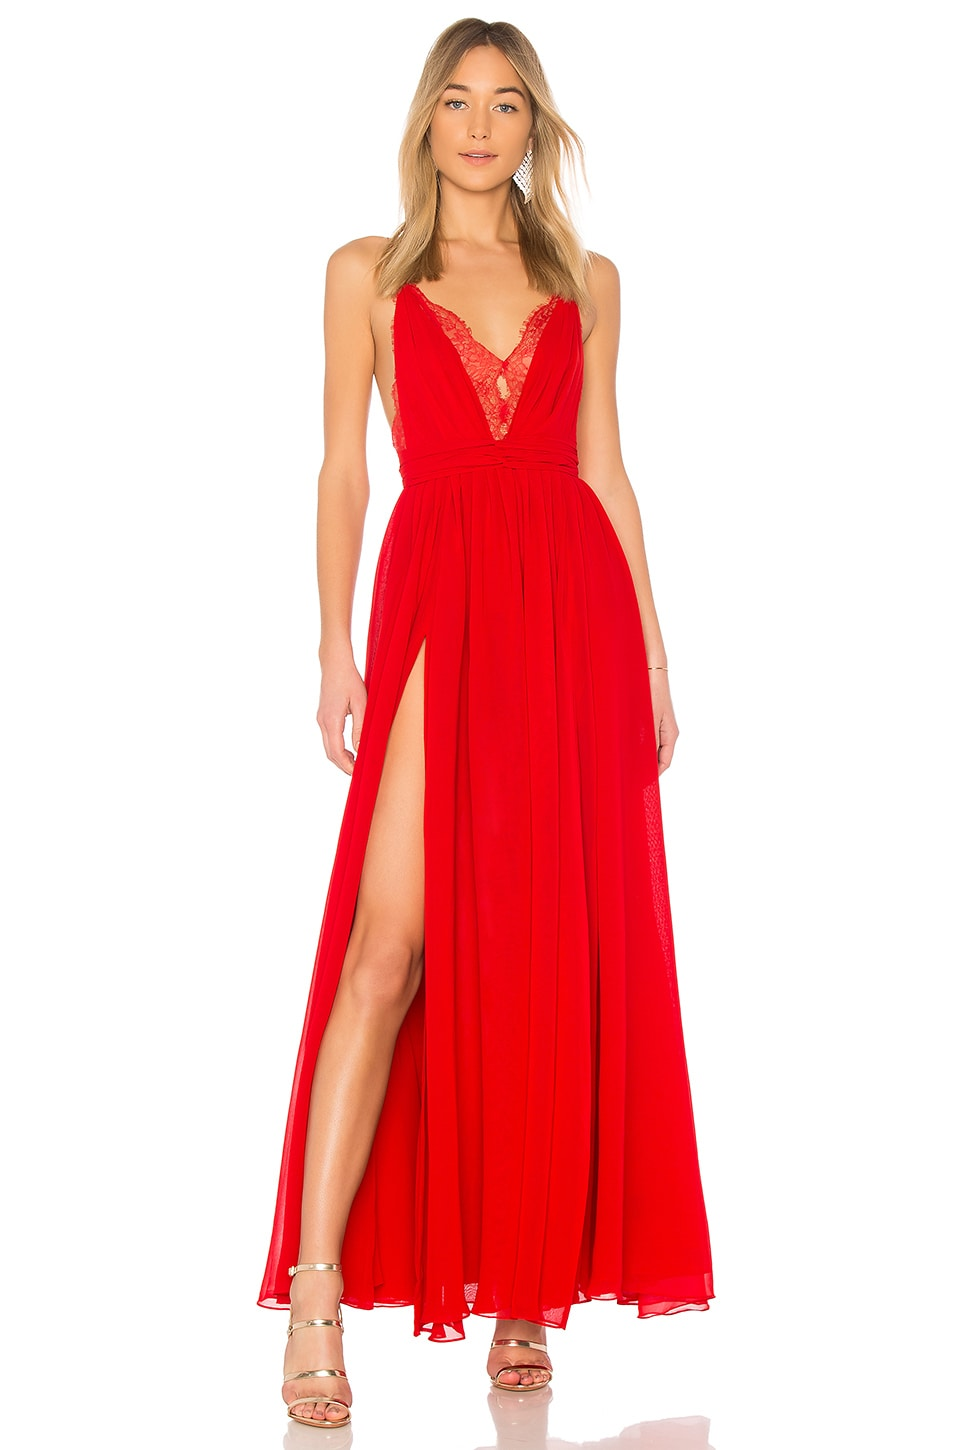 Michael Costello x REVOLVE Justin Gown in Red | REVOLVE